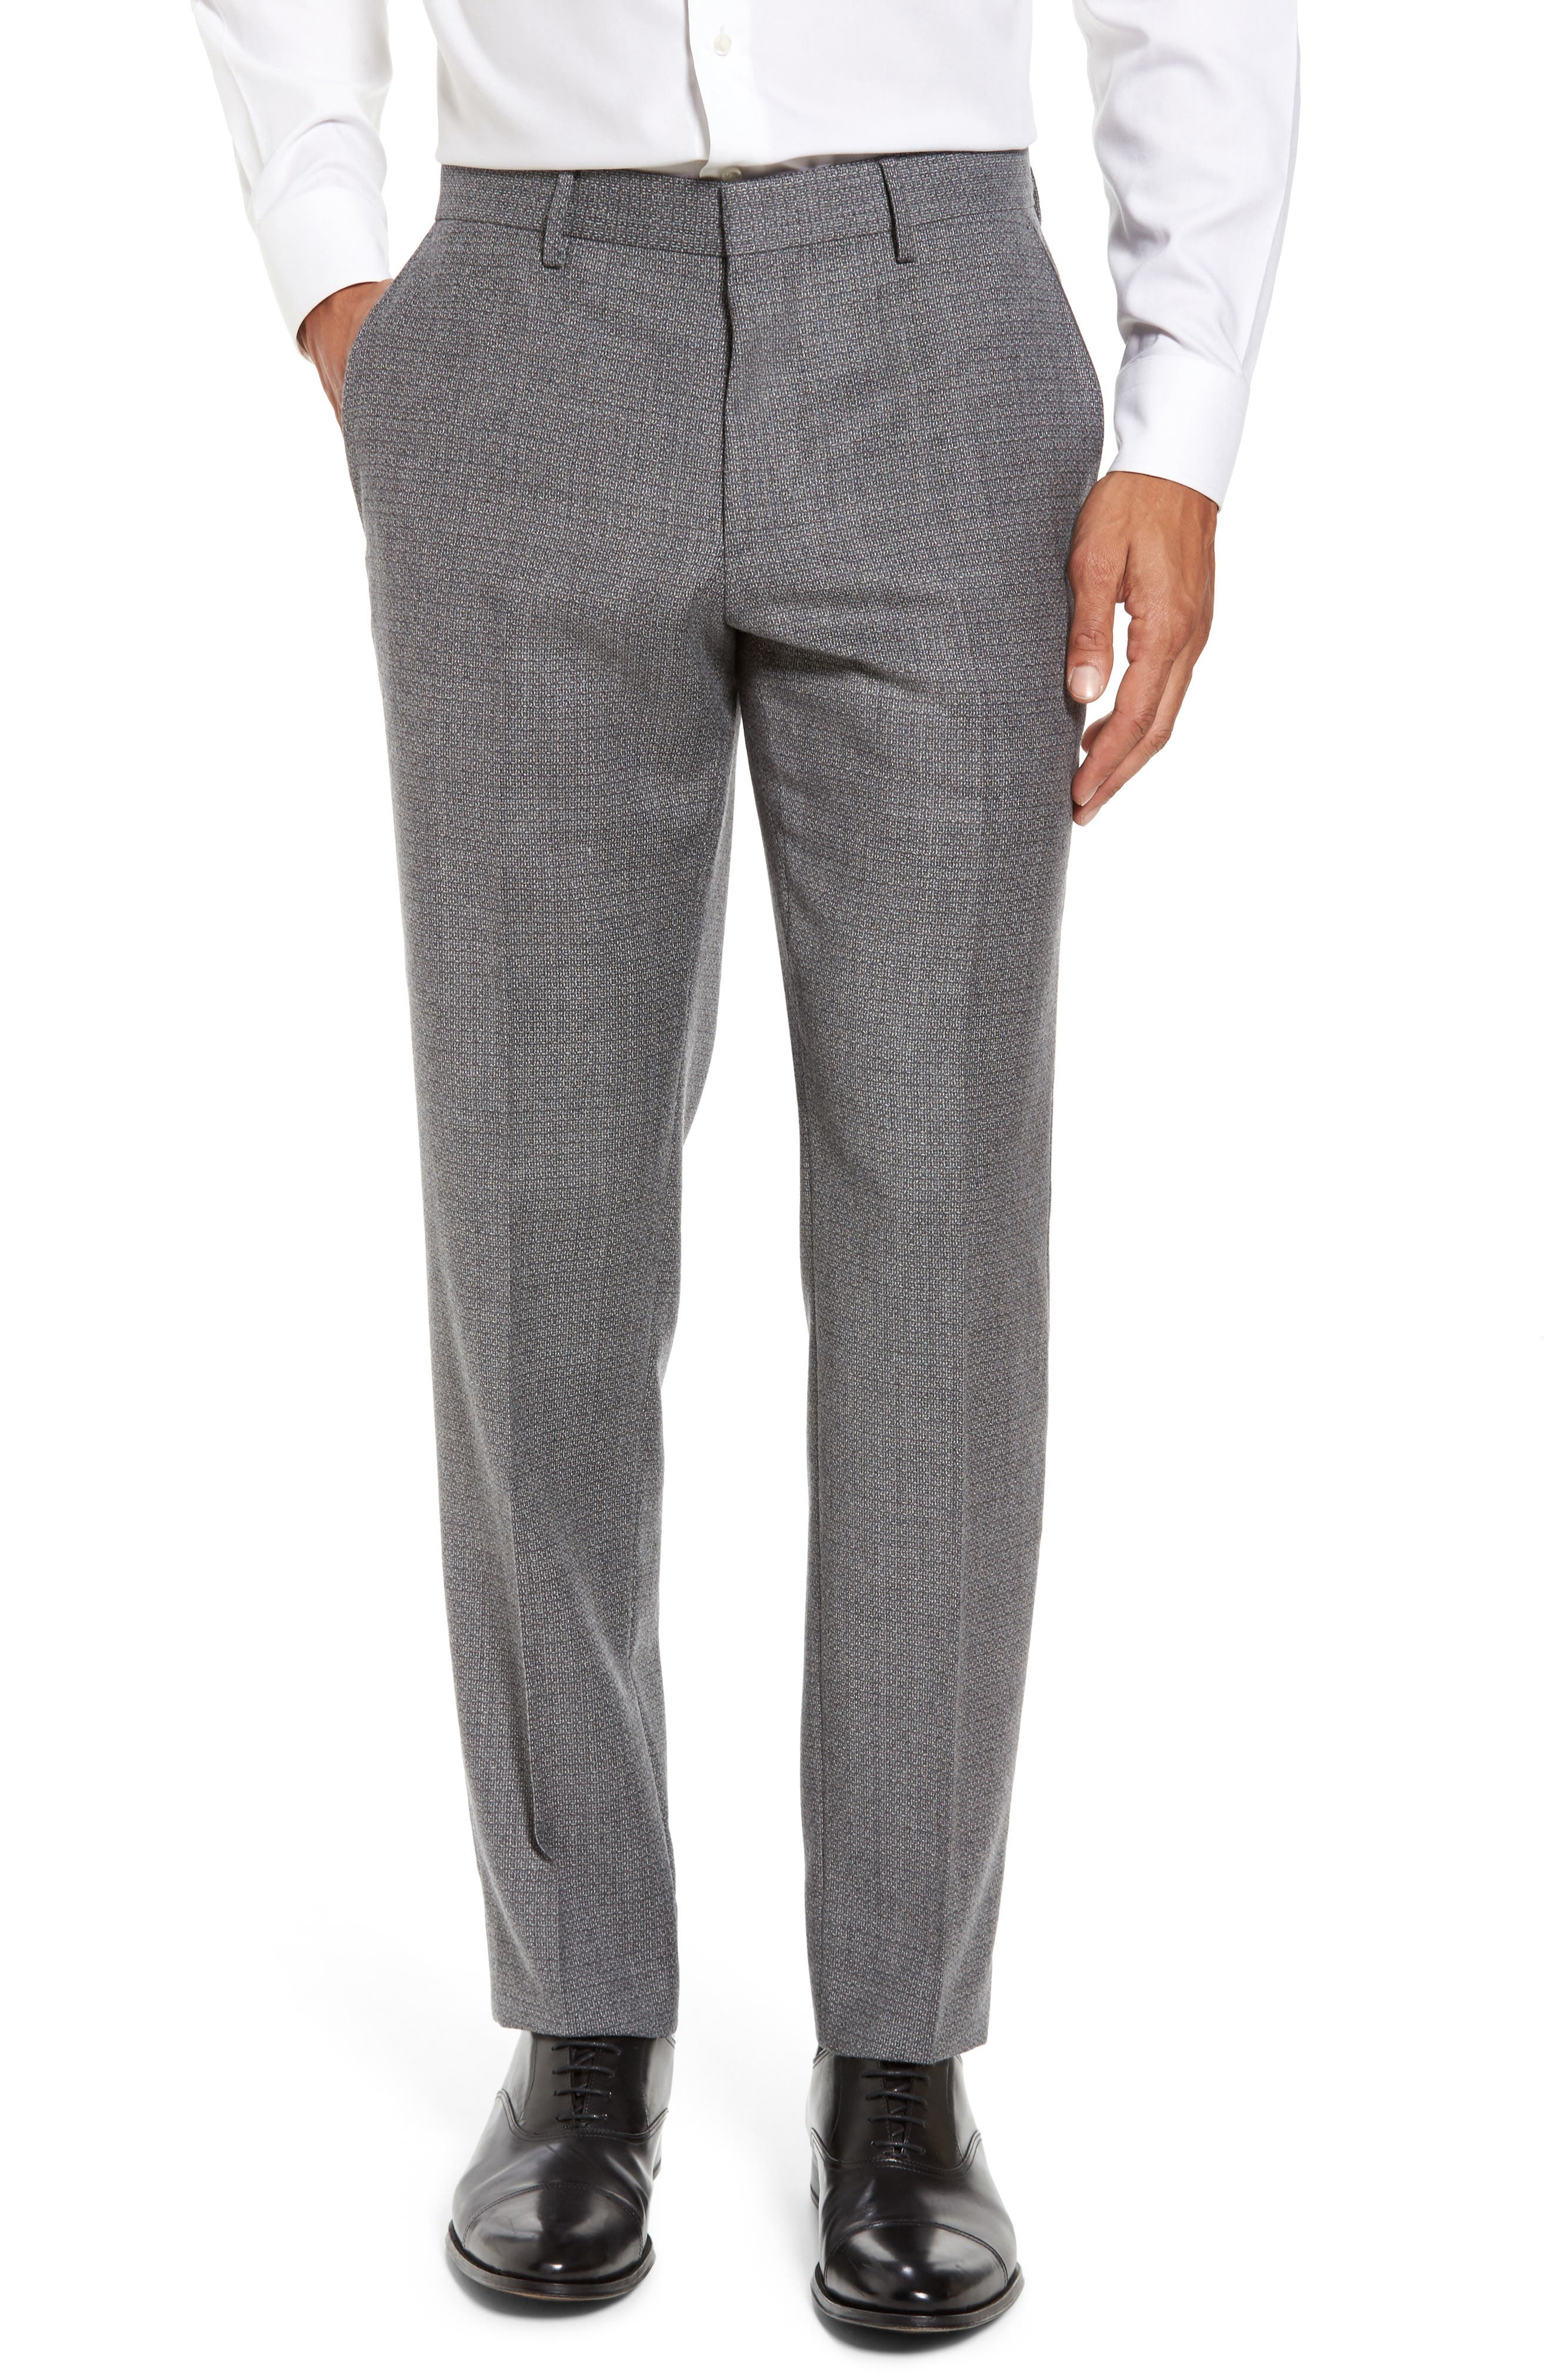 Giro Flat Front Solid Wool Trousers,                             Main thumbnail 1, color,                             030